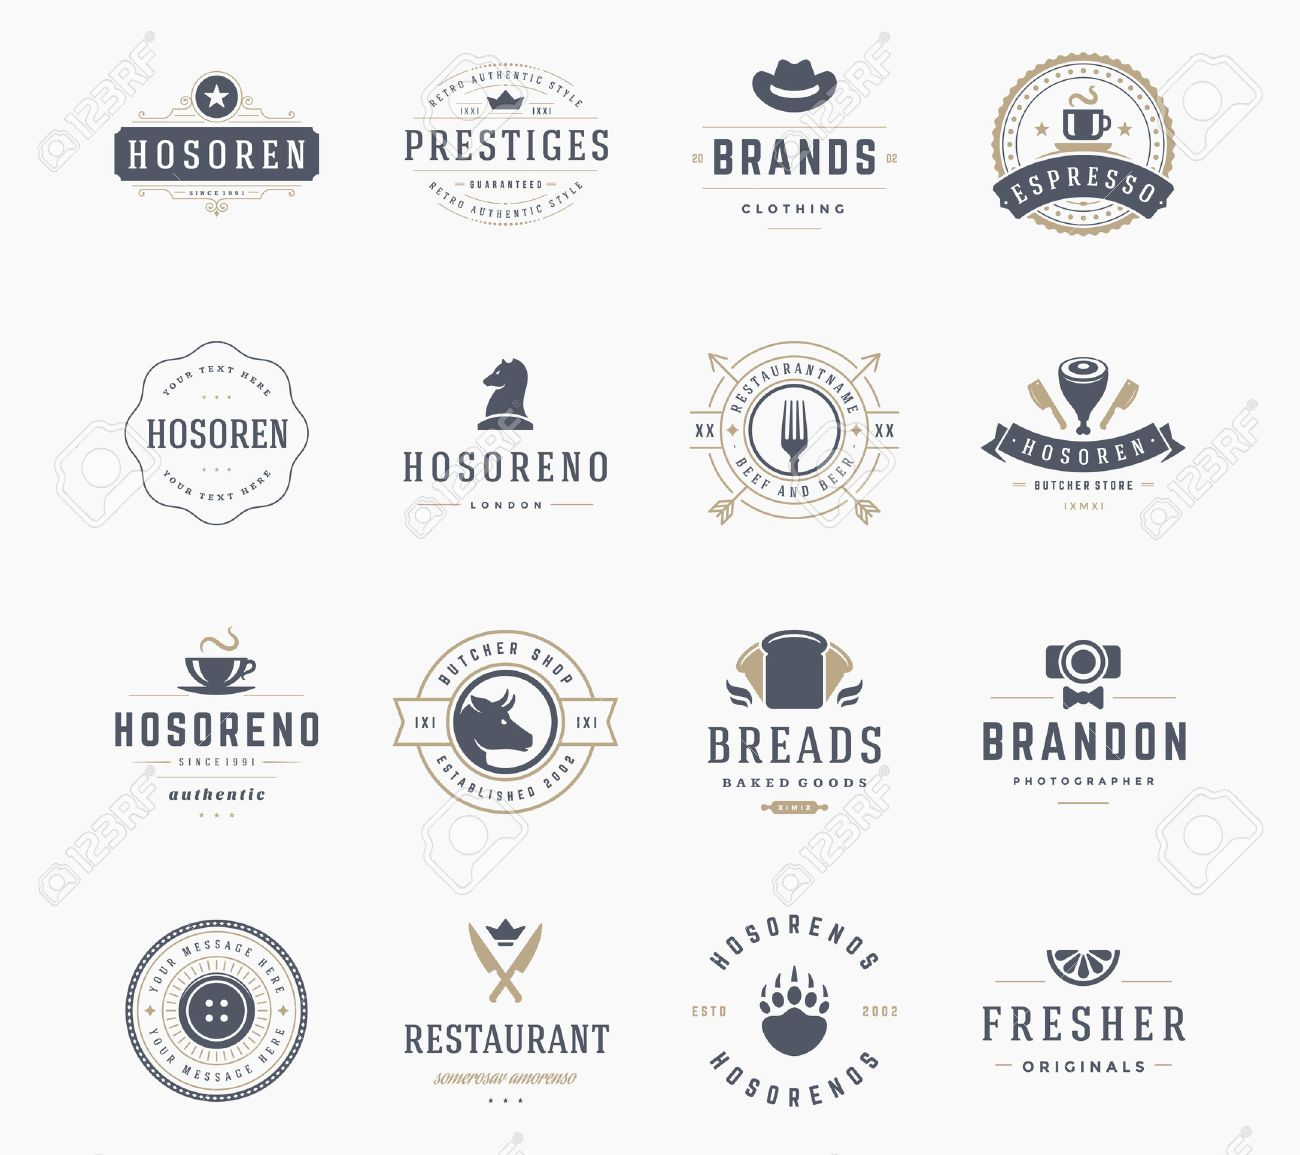 Vintage logos design templates set vector design elements logo vintage logos design templates set vector design elements logo elements logo symbols buycottarizona Image collections